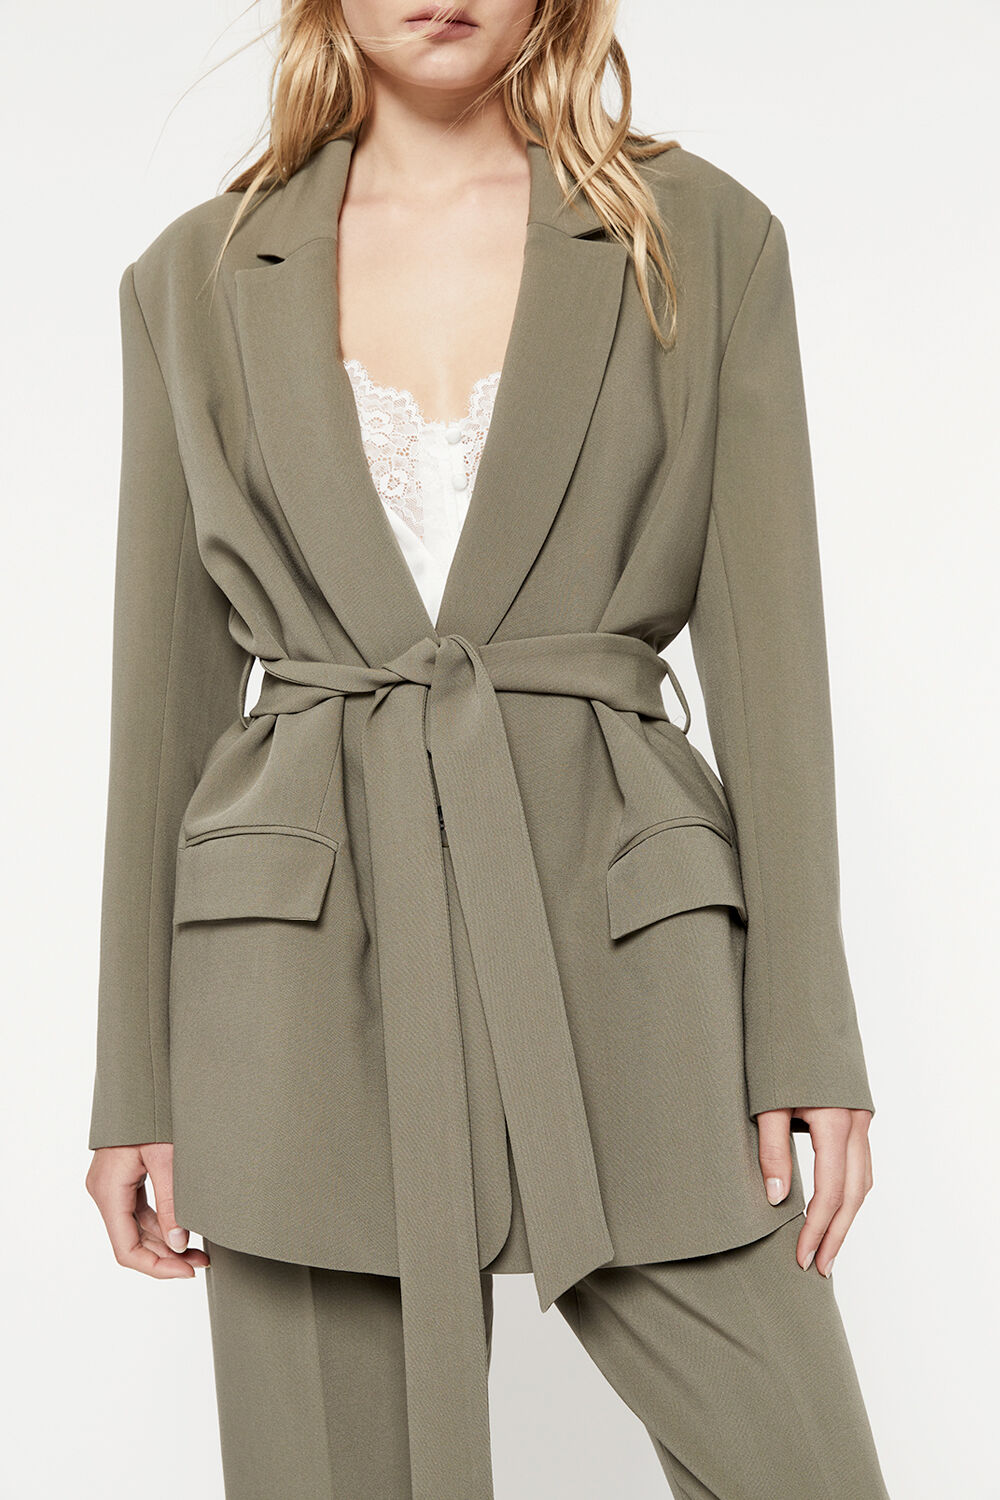 BELTED BLAZER in colour IVY GREEN